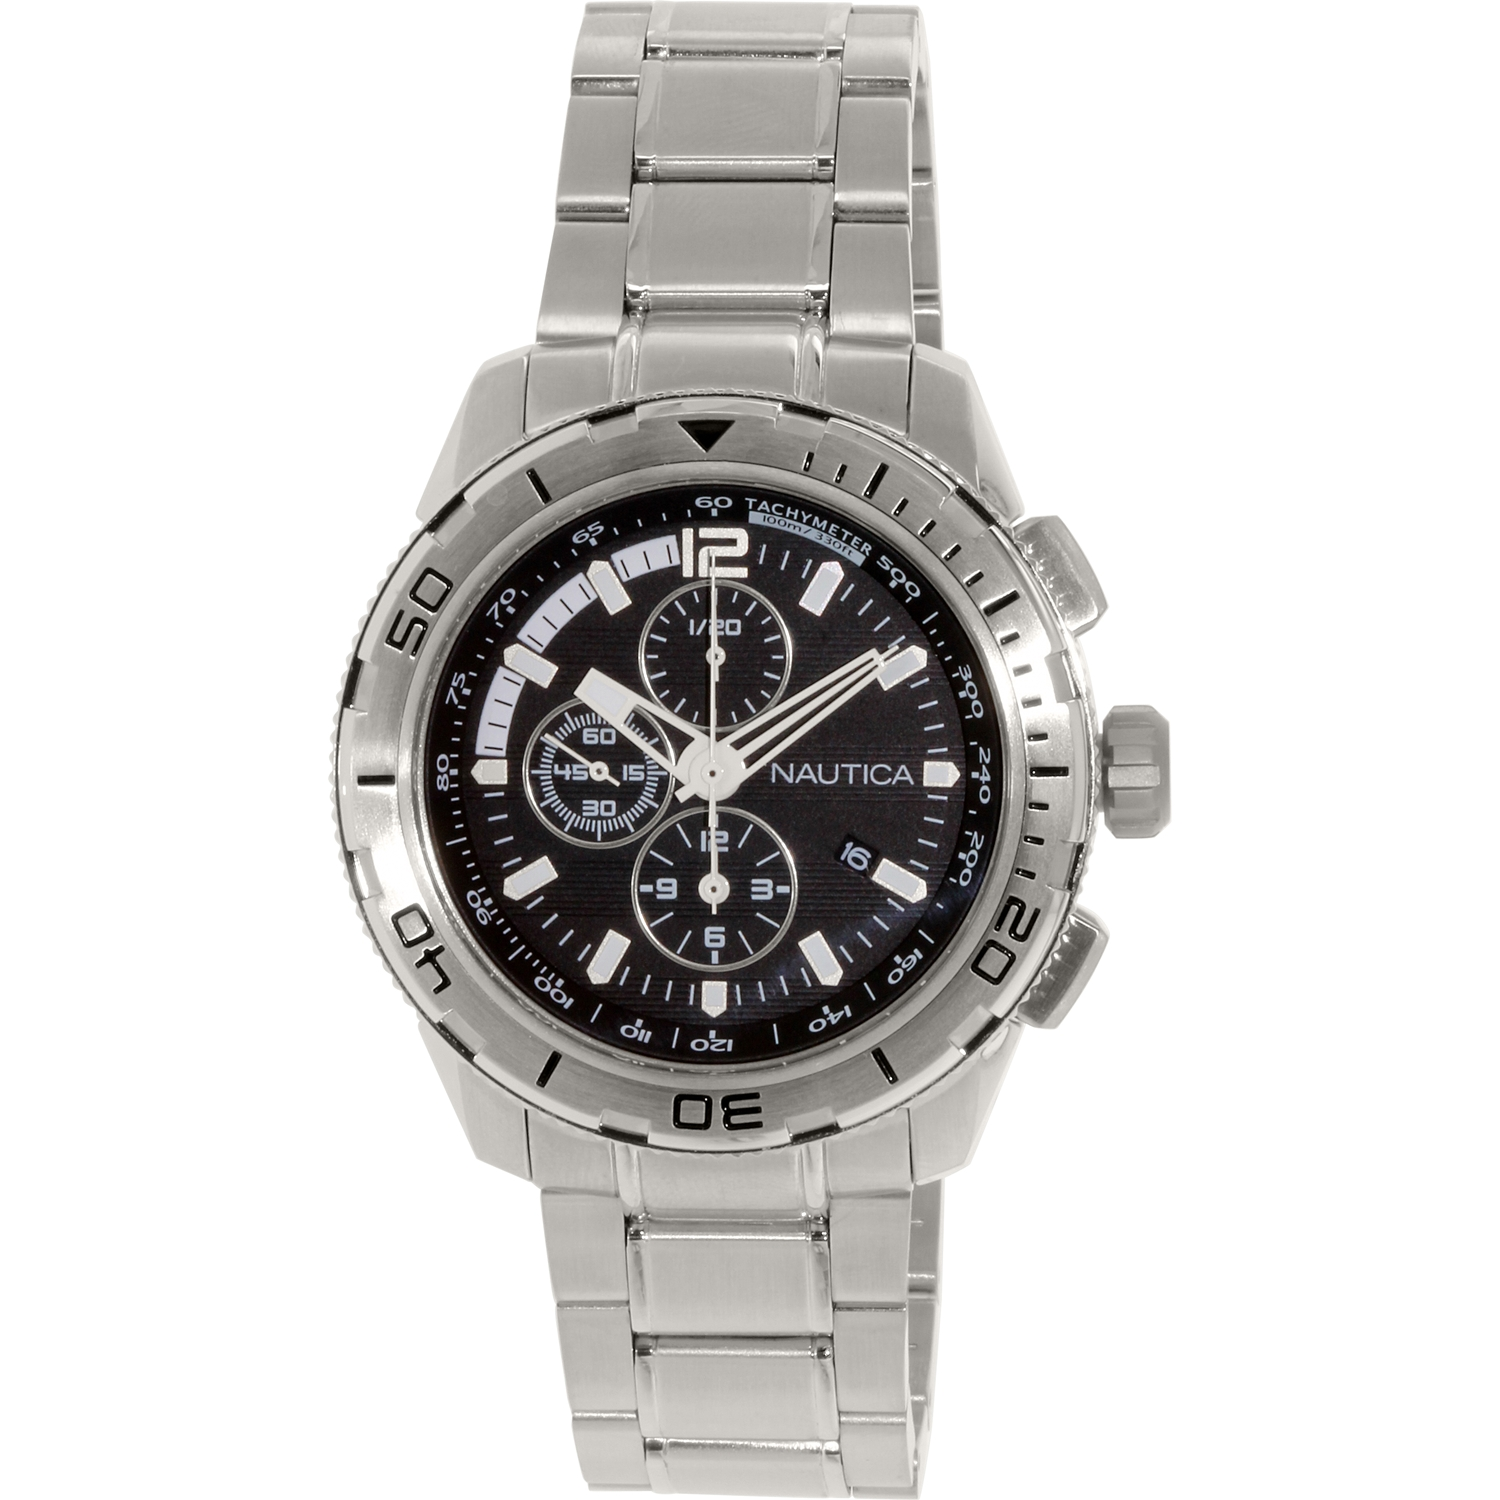 Nautica Men's N22637G Silver Stainless-Steel Quartz Fashion Watch by Nautica